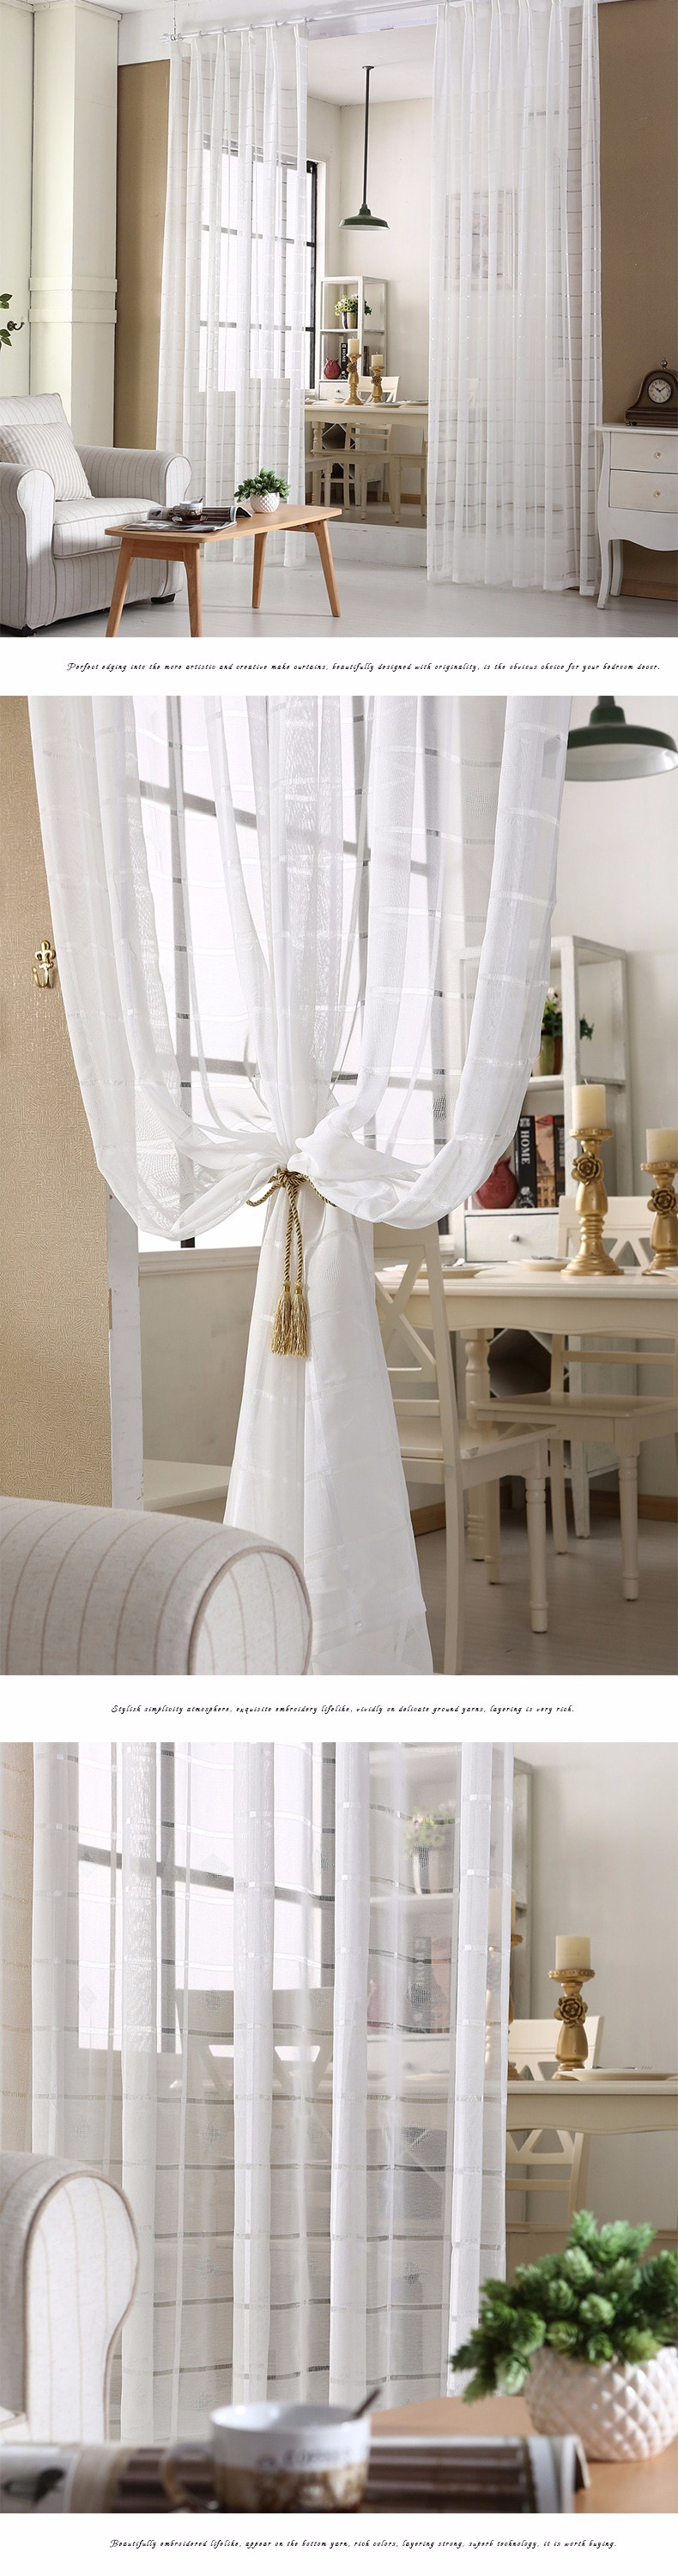 panel store click hi curtains voile home top to pack latte slot zoom more res